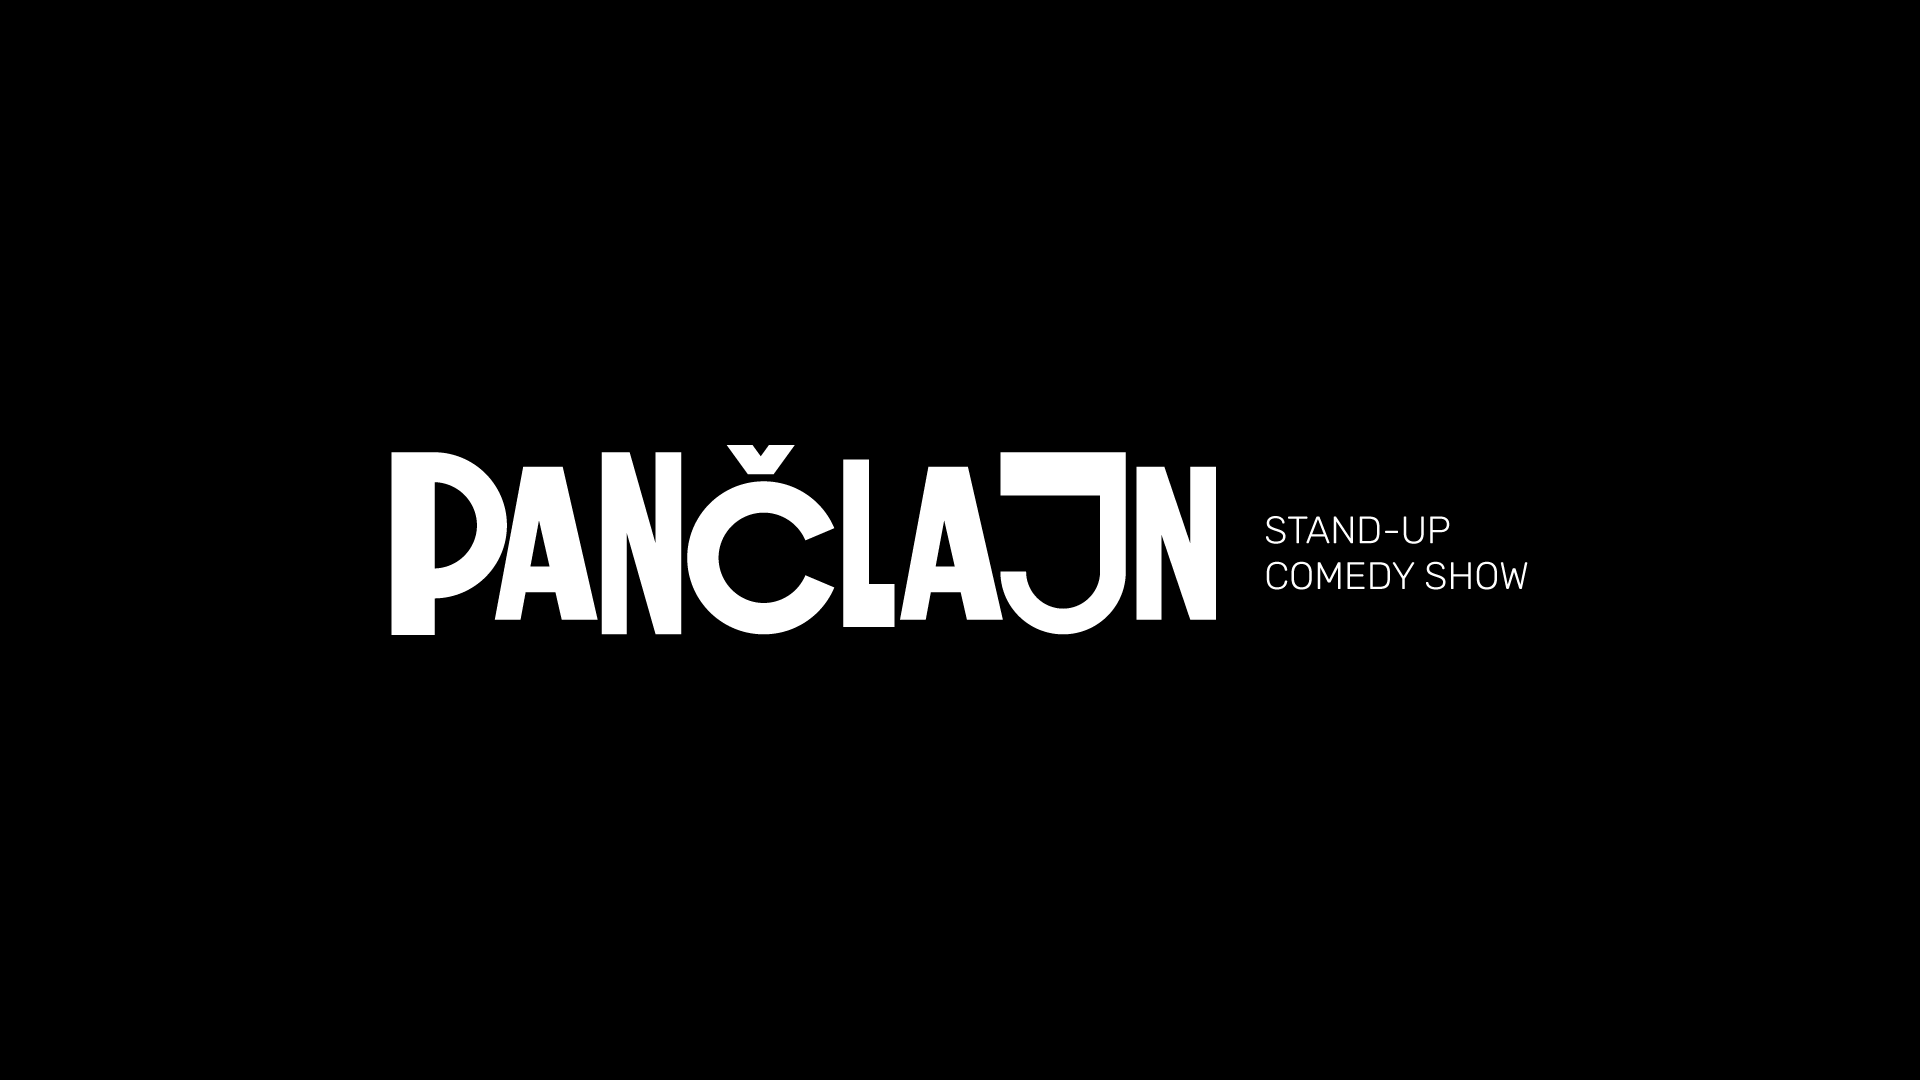 Marketing Exhibition Stand Up Comedy : Pančlajn stand up comedy show kc dunaj interticket sk